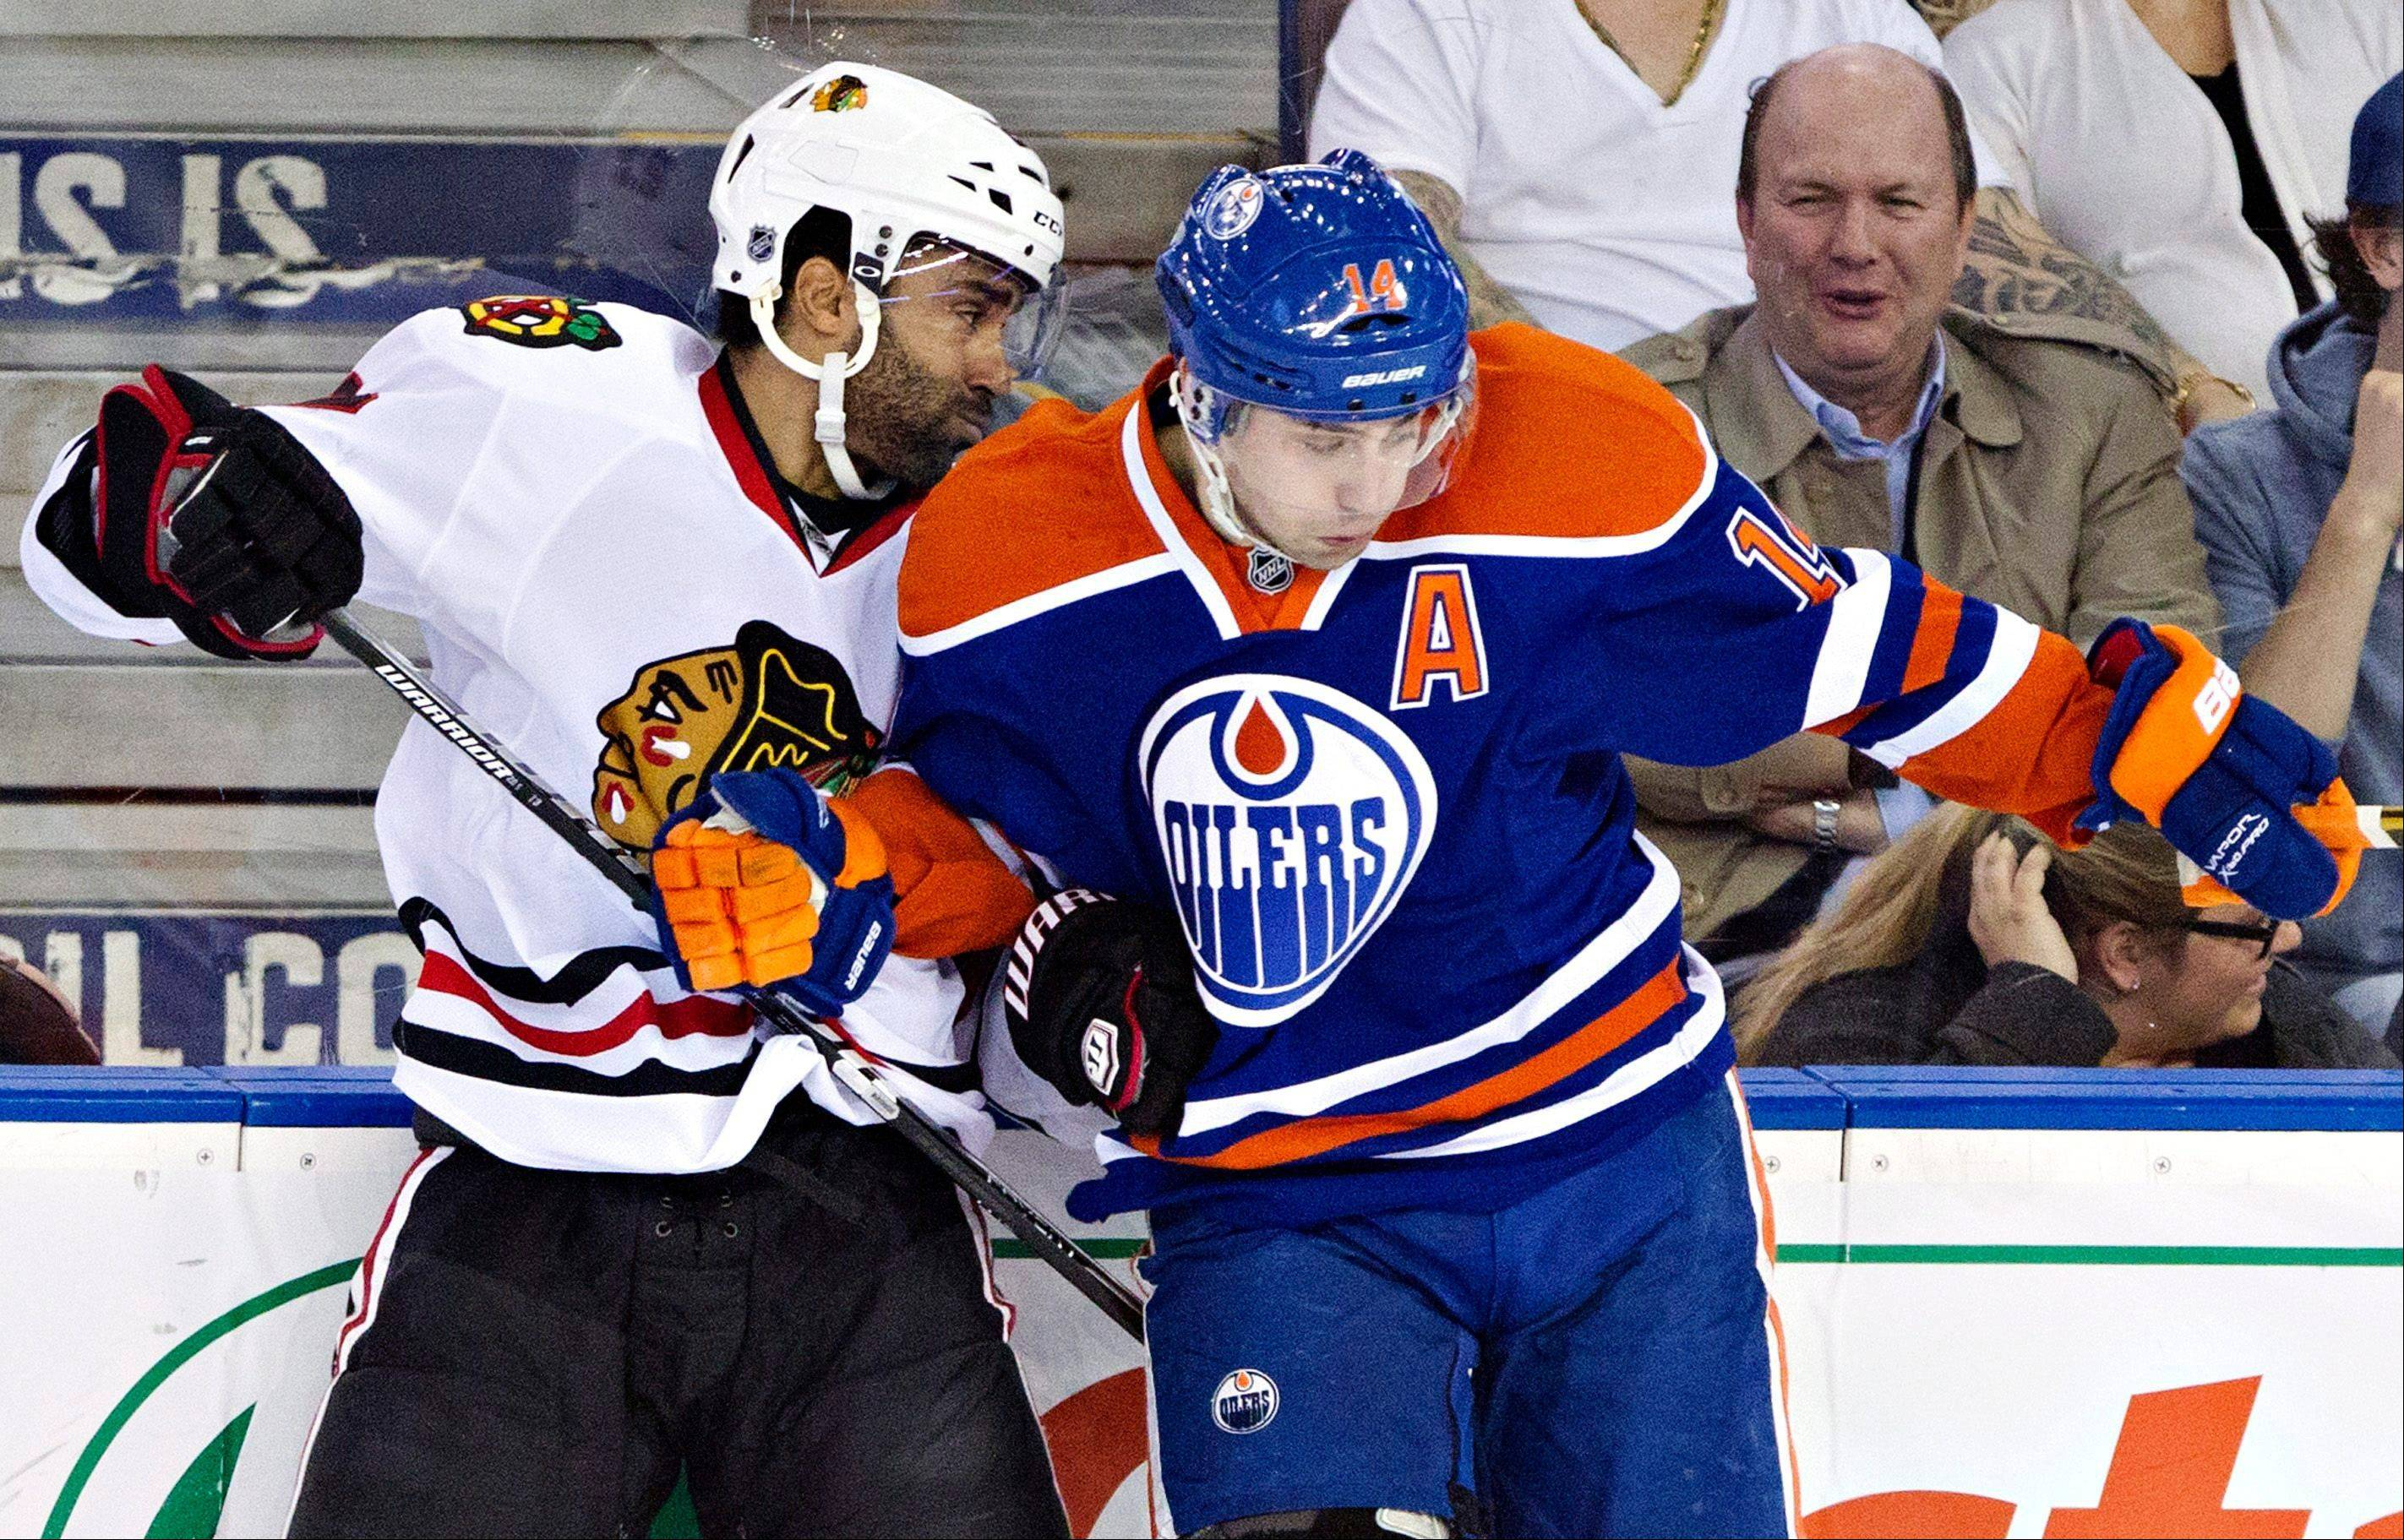 Chicago Blackhawks� Johnny Oduya, left, checks Edmonton Oilers� Jordan Eberle during the first period of their NHL hockey game in Edmonton, Alberta, Wednesday, April 24, 2013.